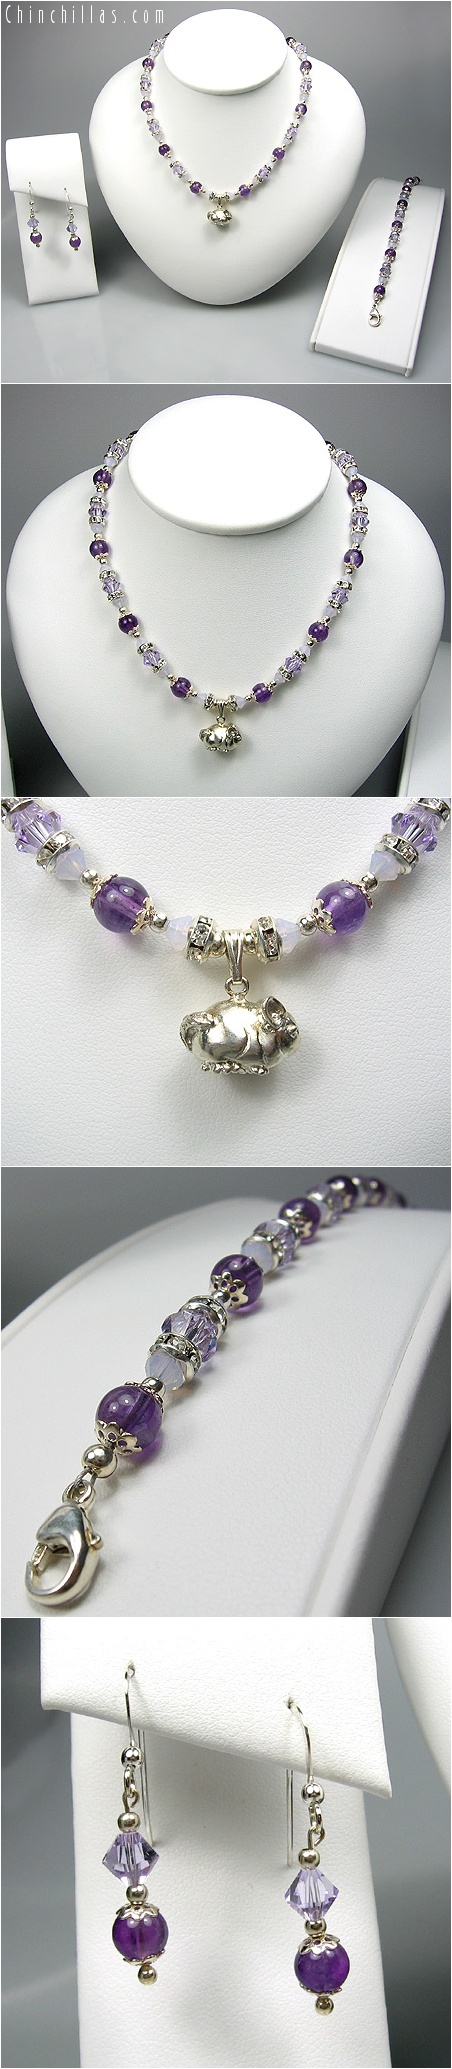 Swarovski Crystal, Amethyst & Sterling Silver Jewelry Set with Chinchilla Millennia IV Chinchilla